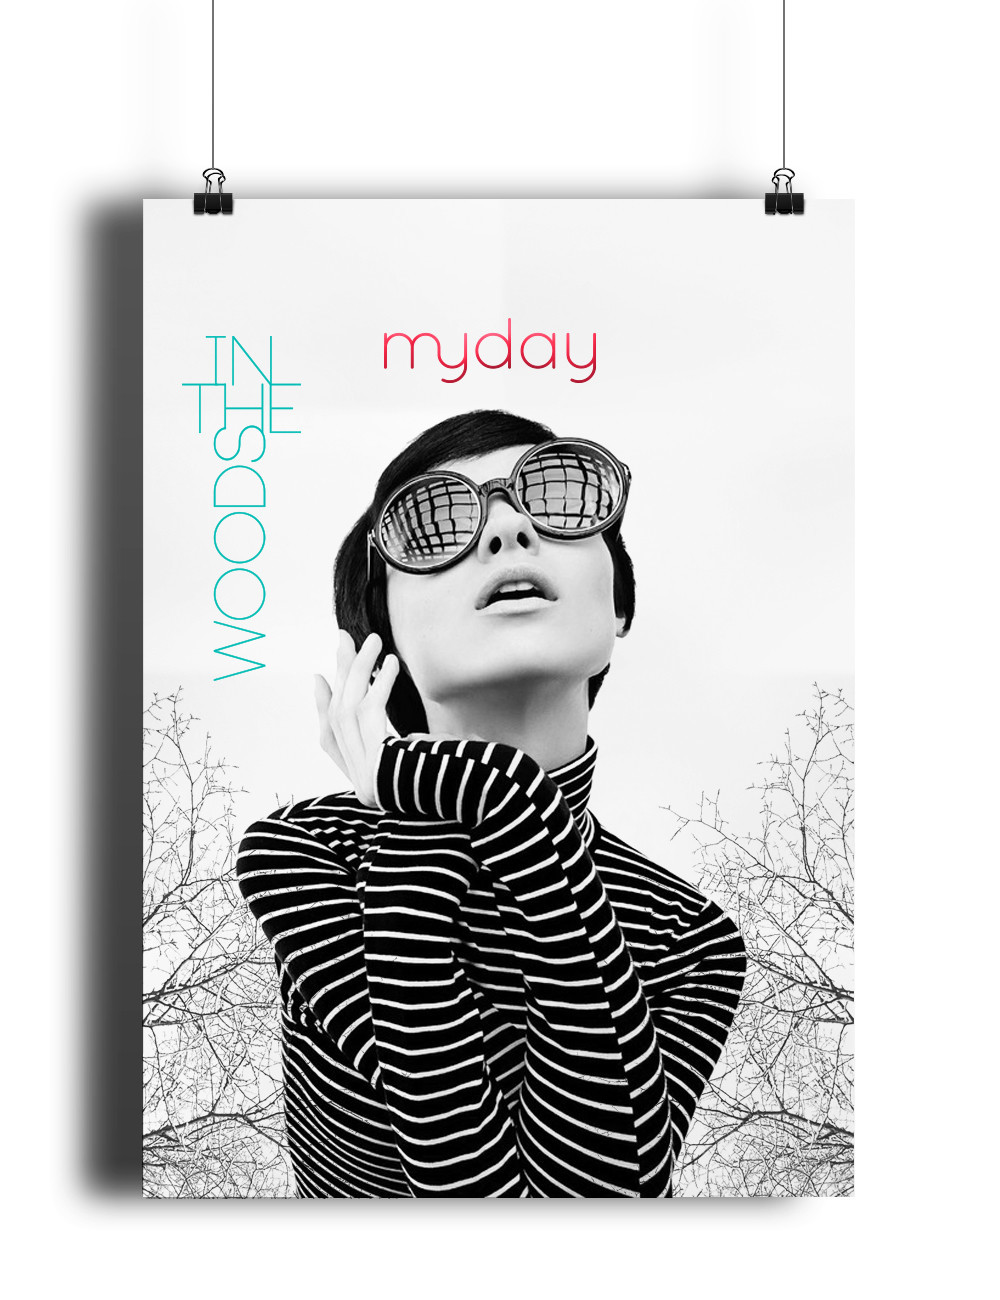 Myday Poster - 1 by Bárdos Barbara